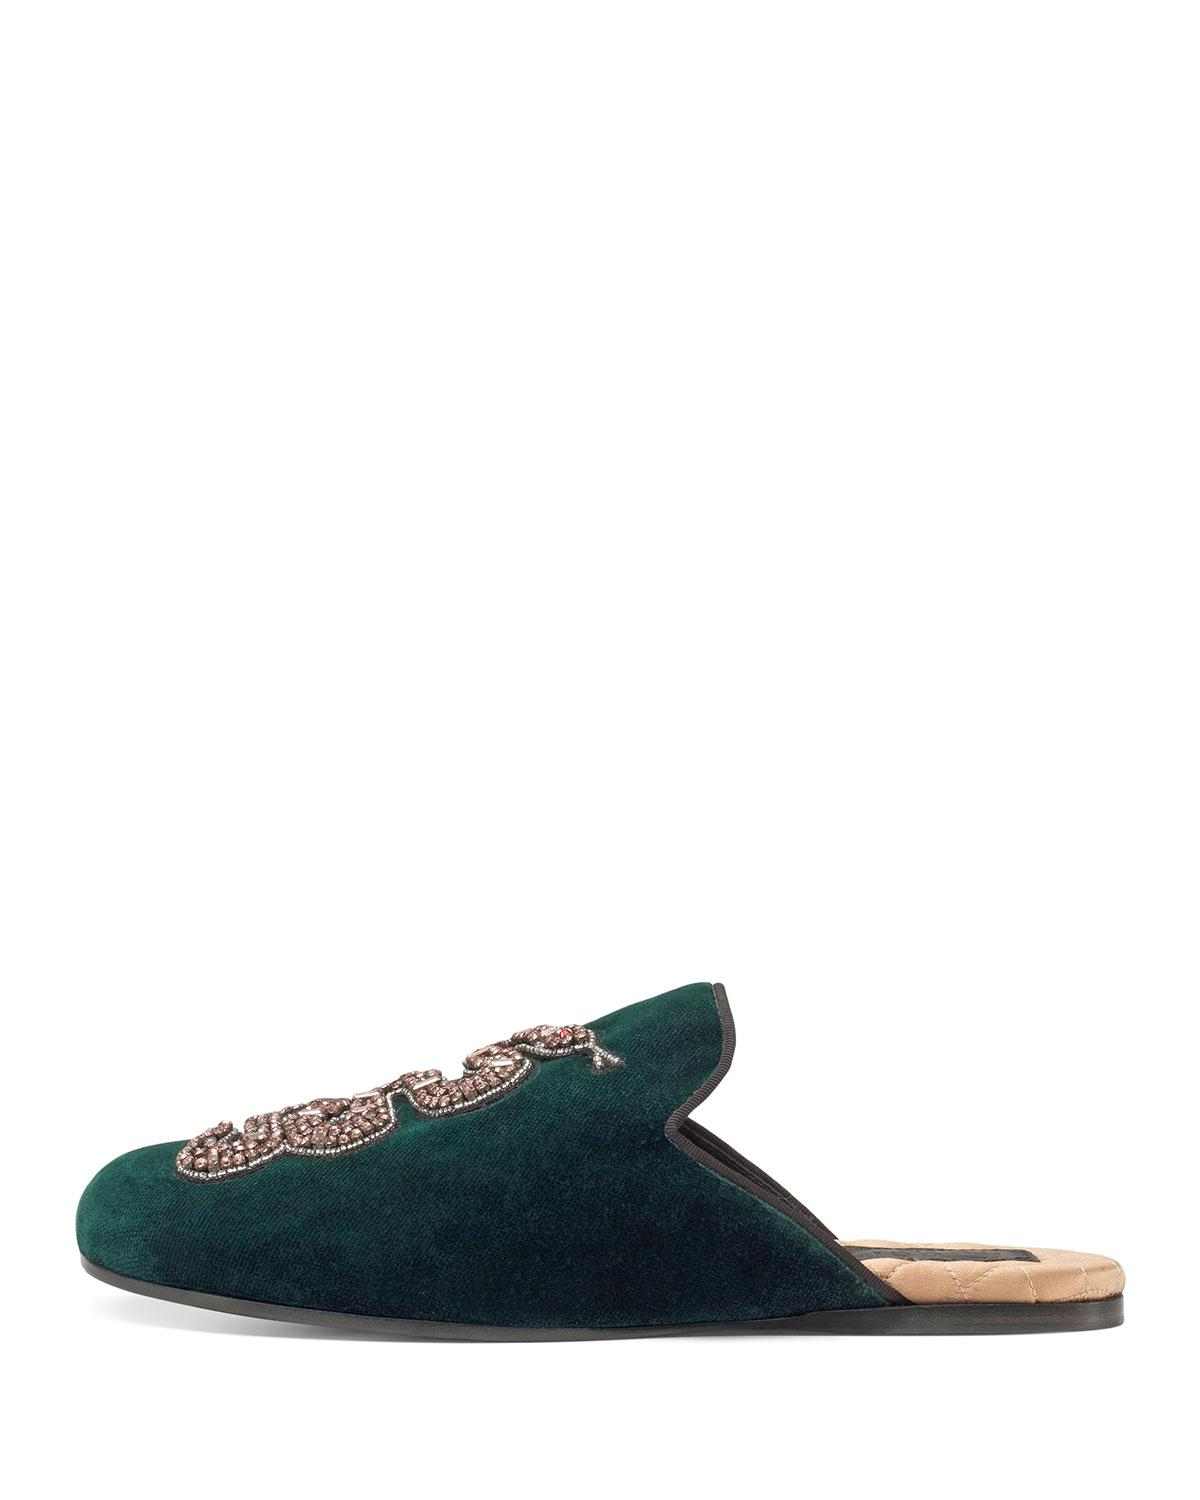 e288a0317 Gucci Lawrence Crystal Snake Mule in Green - Lyst